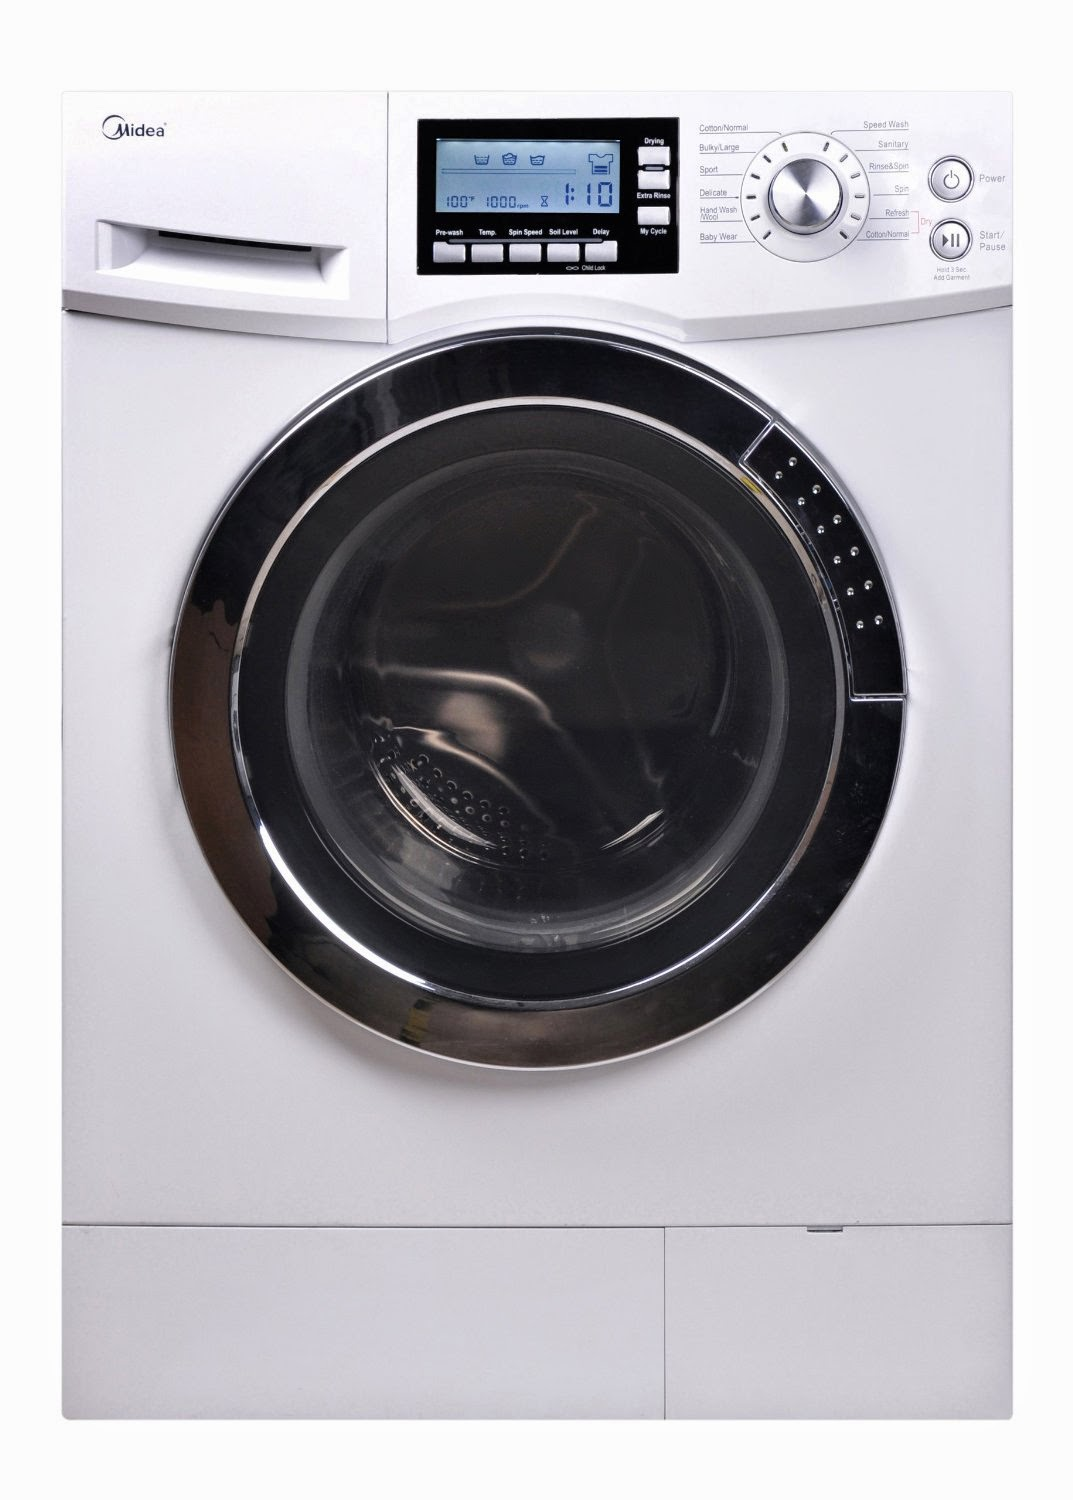 Miele stackable washer dryer ventless - Finest Midea Rv Washer Dryer Combo With Miele Ventless Washer Dryer Combo